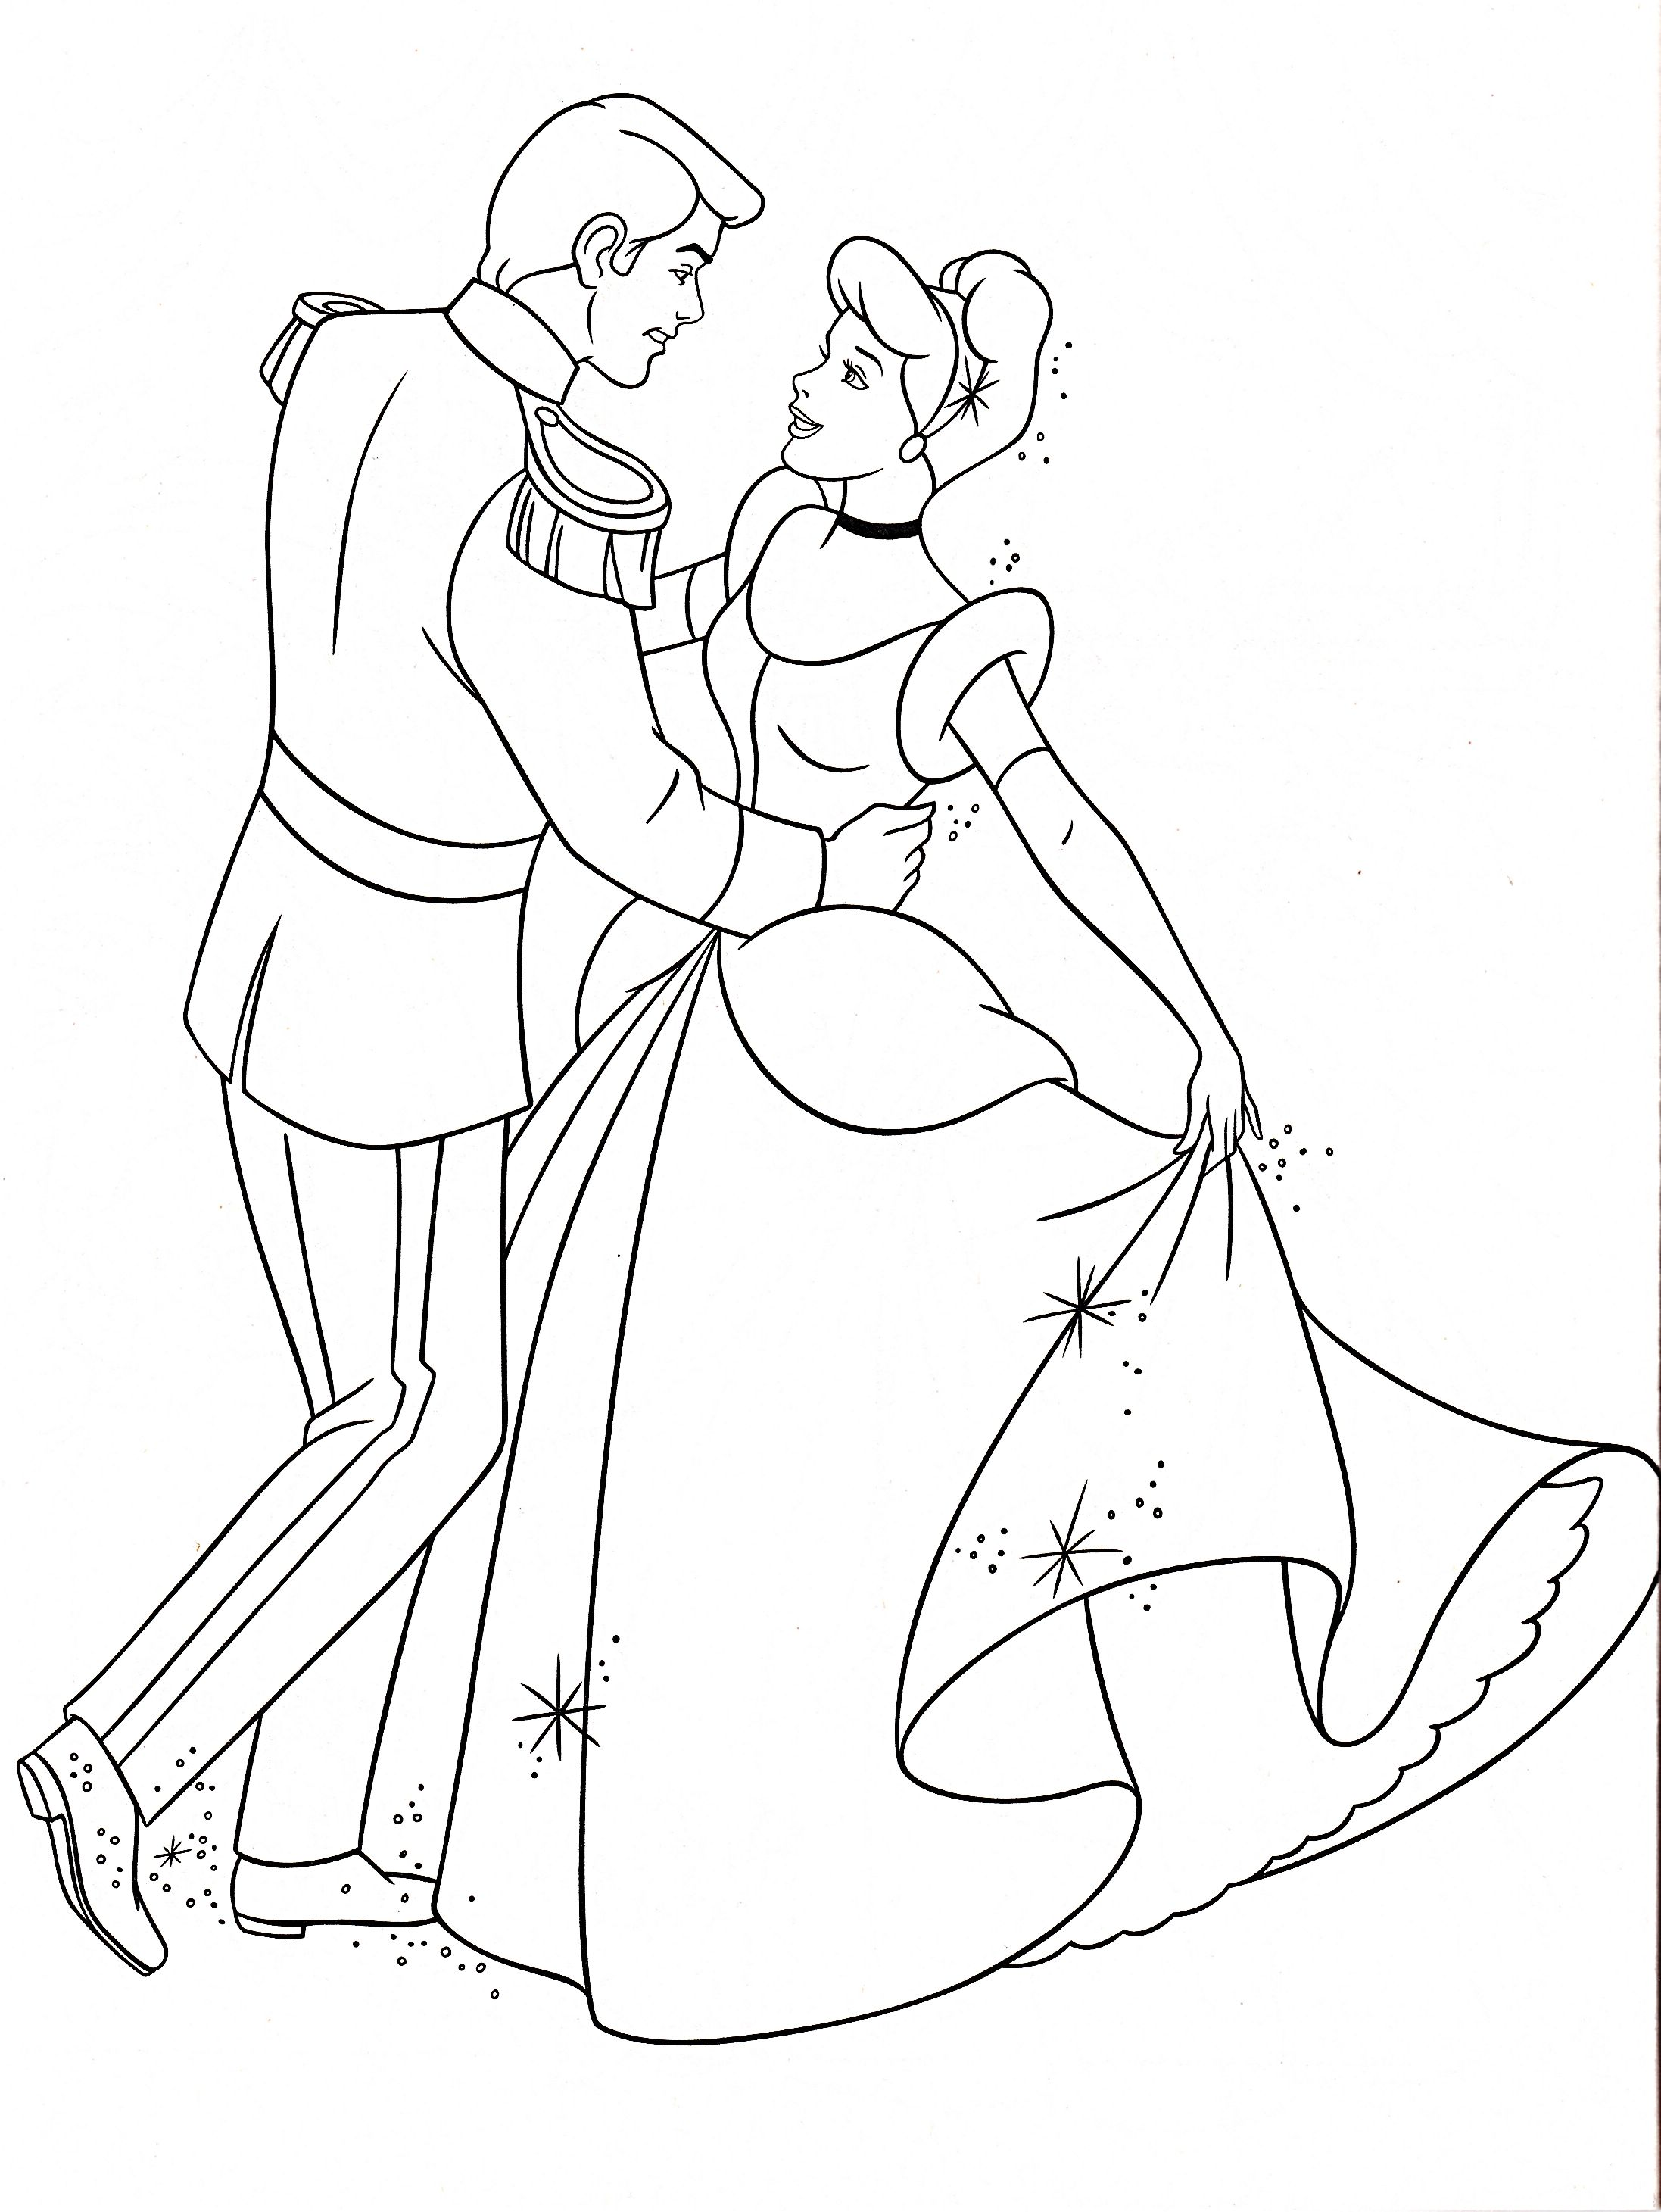 cinderella is dancing with the prince charming coloring page disney coloring pages cinderella coloring book pages